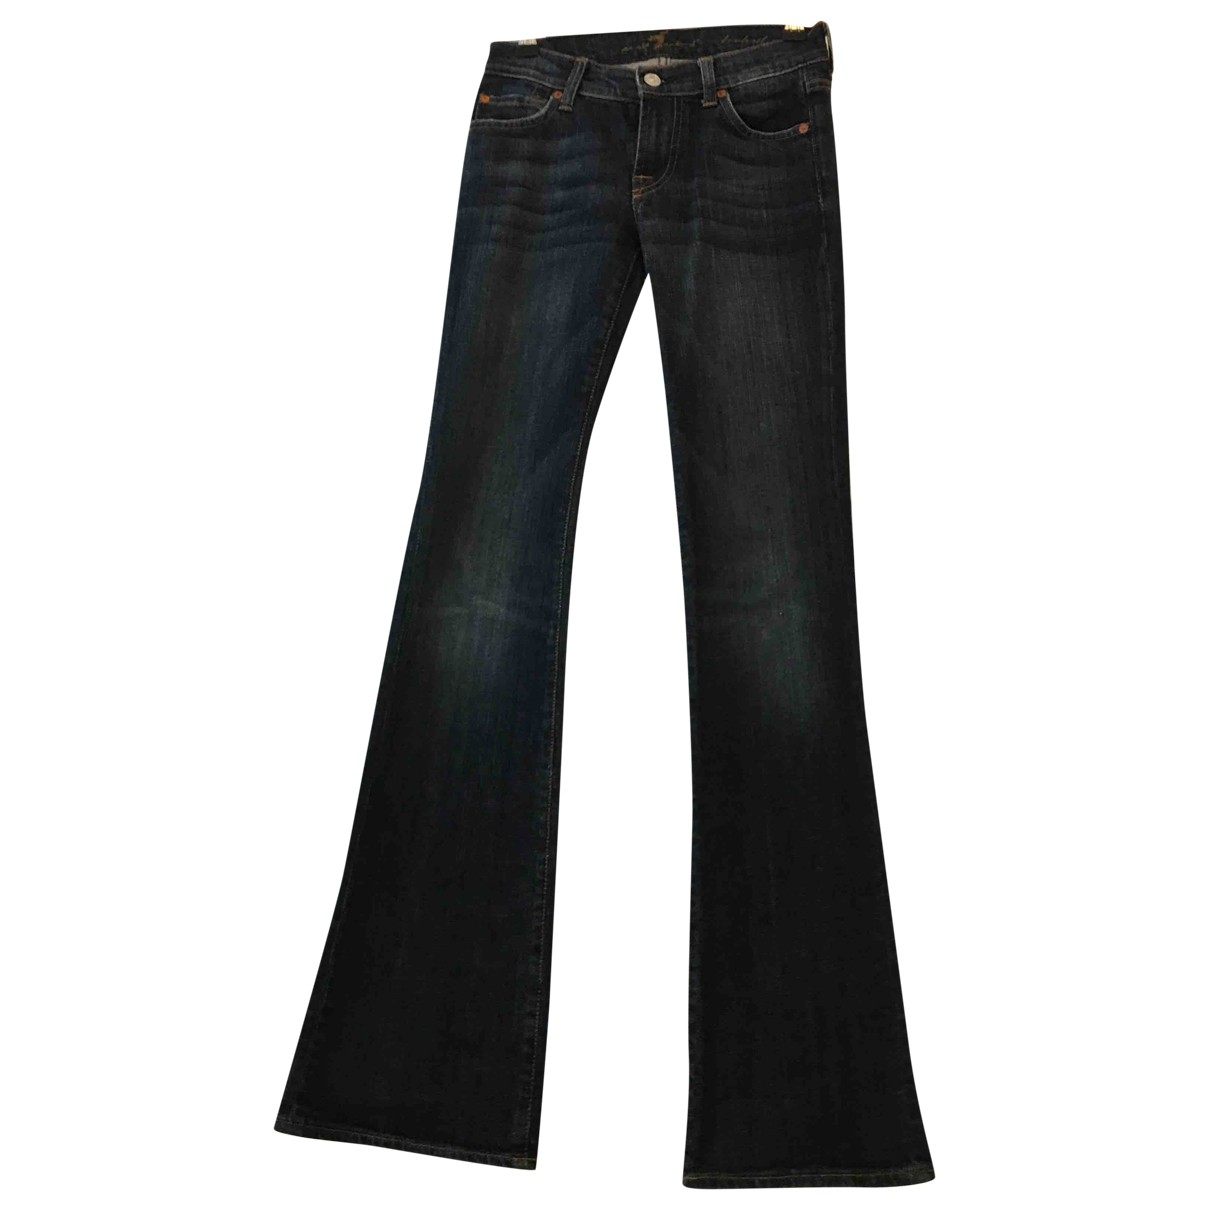 7 For All Mankind N Blue Denim - Jeans Jeans for Women 24 US